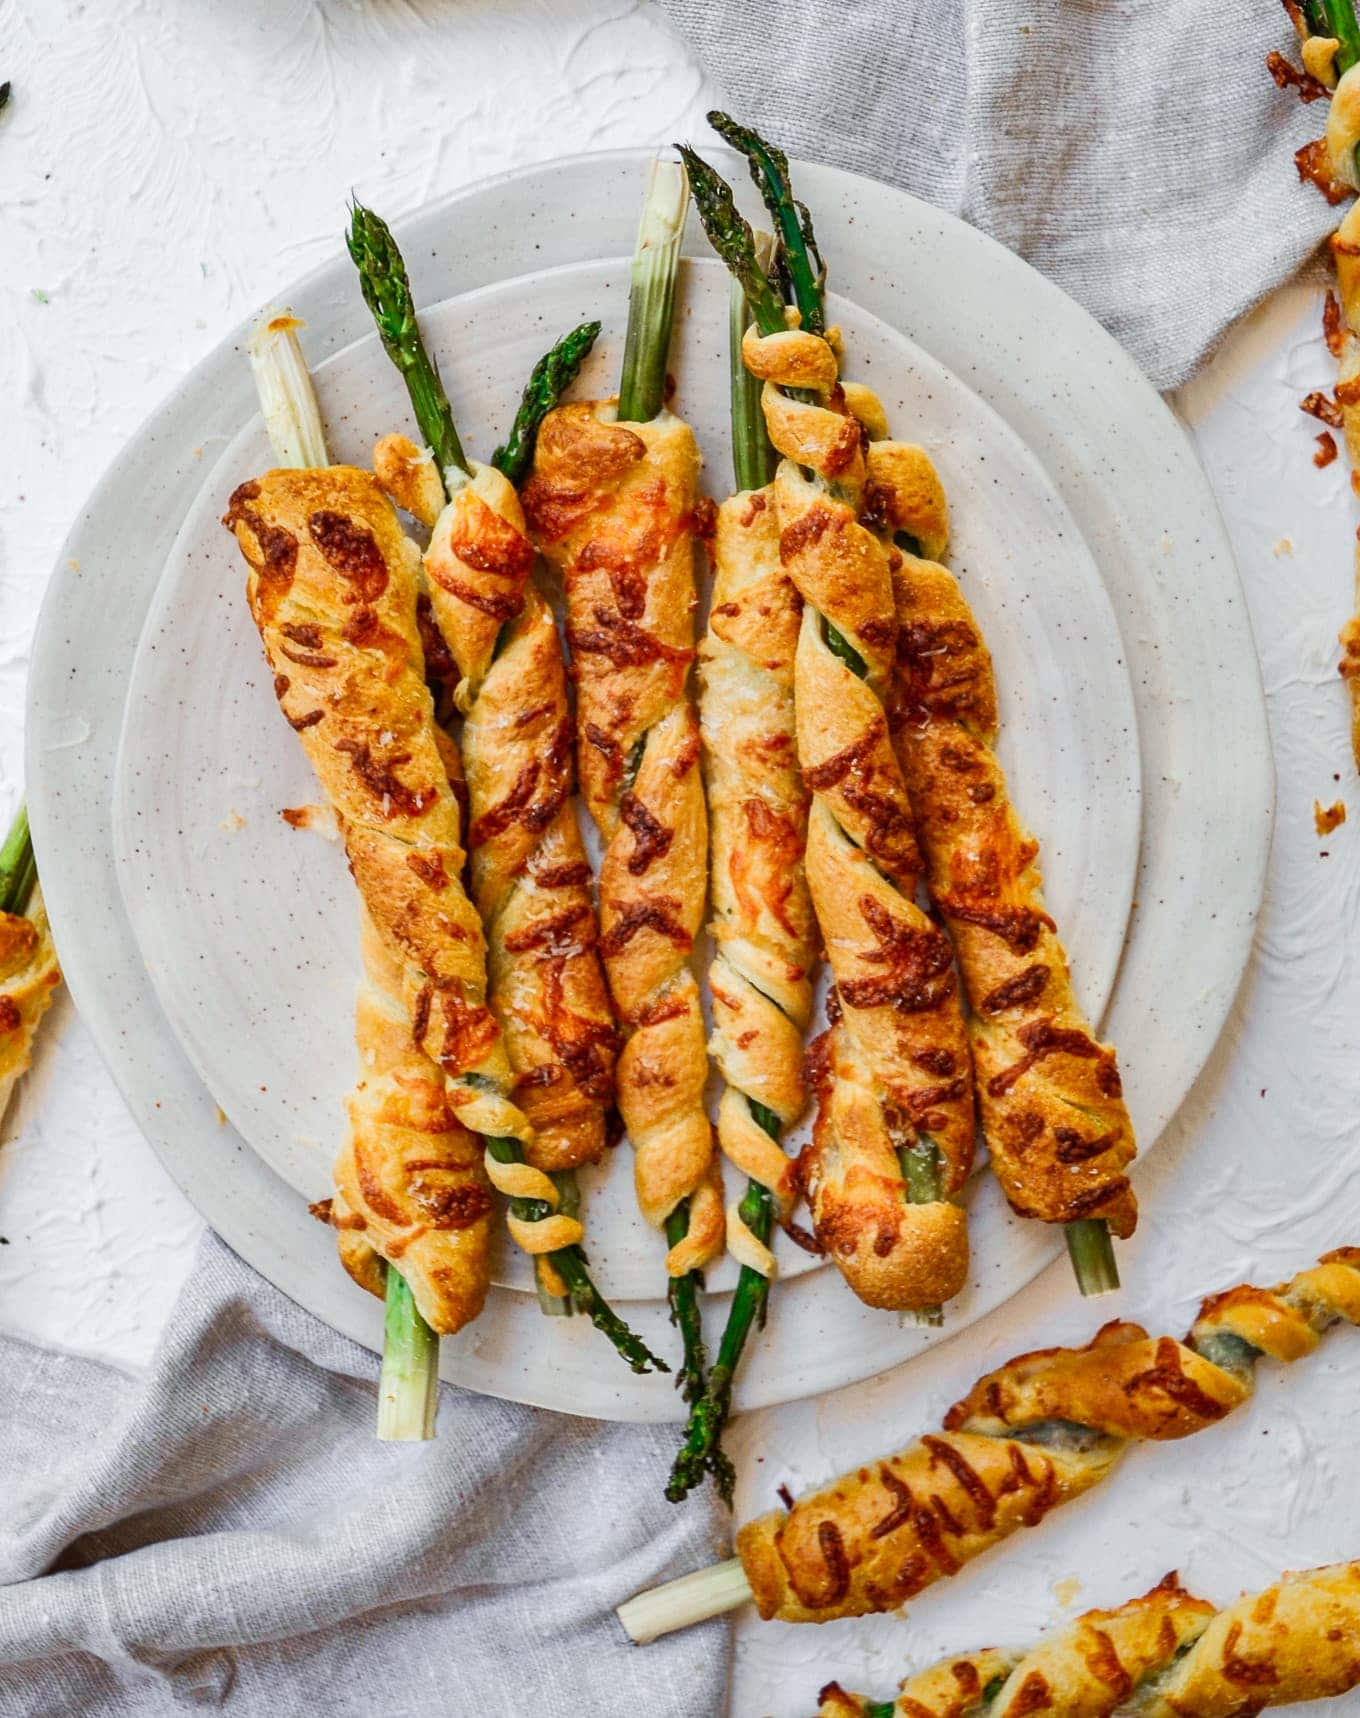 Cheesy Asparagus Crescent Roll Appetizers make eating your veggies fun! Recipe via Thecookierookie.com